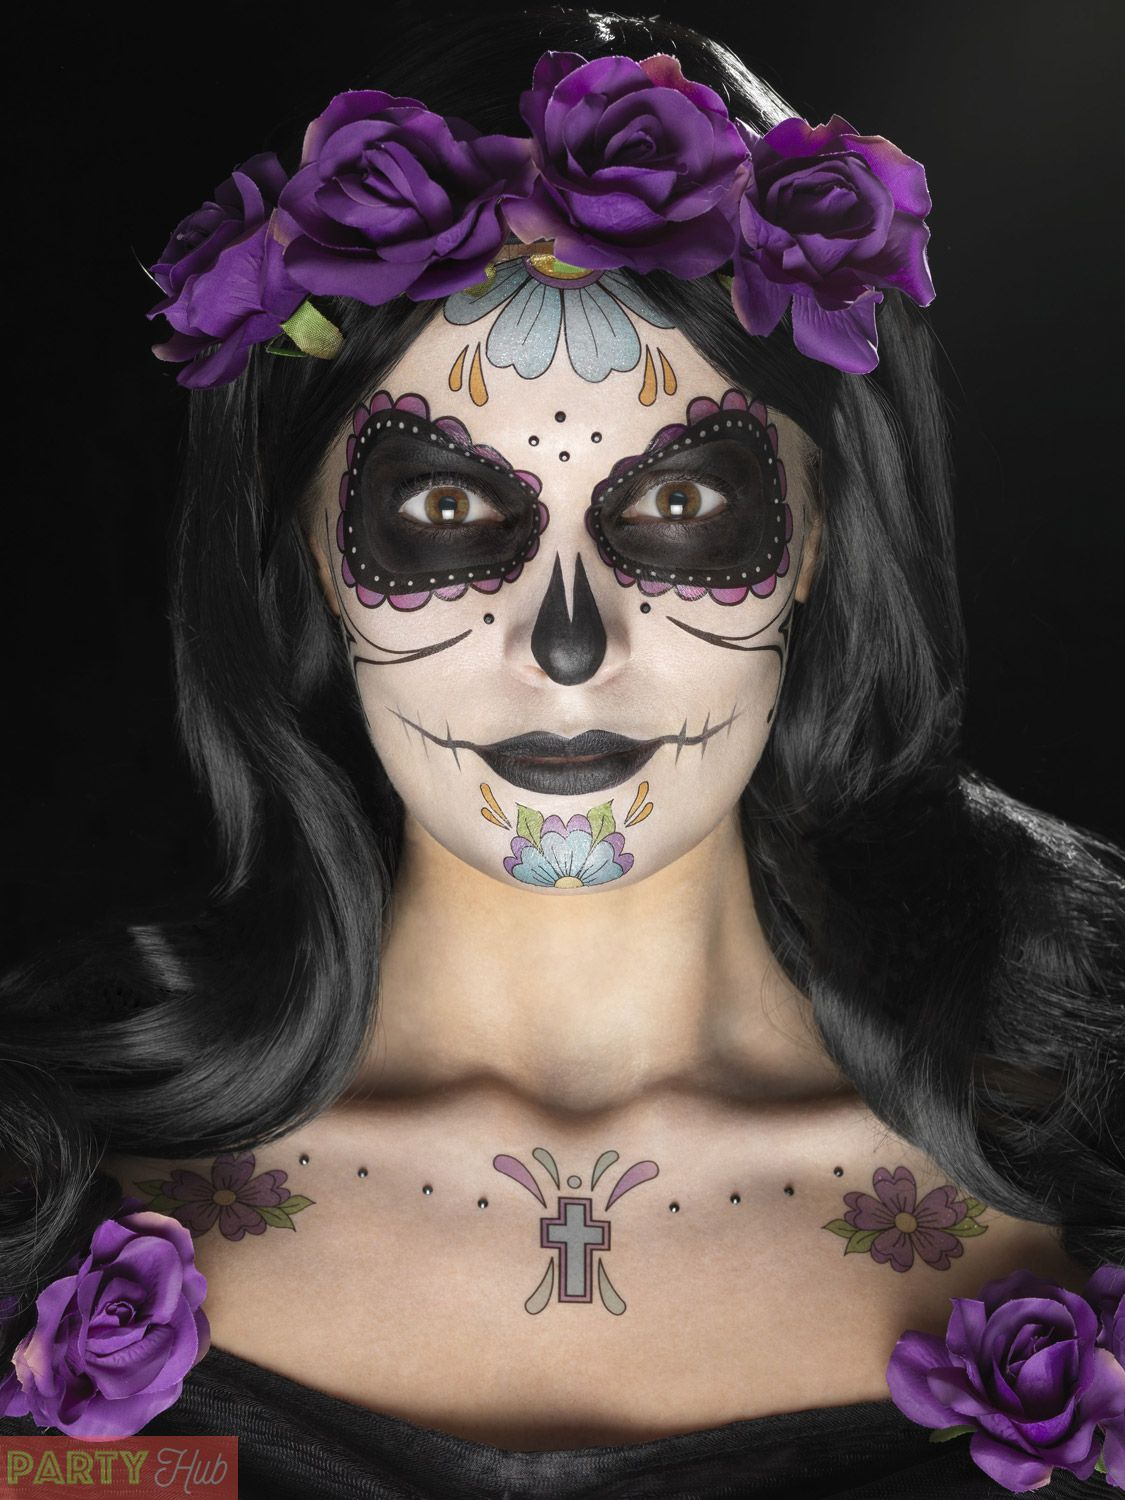 Details about Day of the Dead Makeup Tattoo Kit Halloween